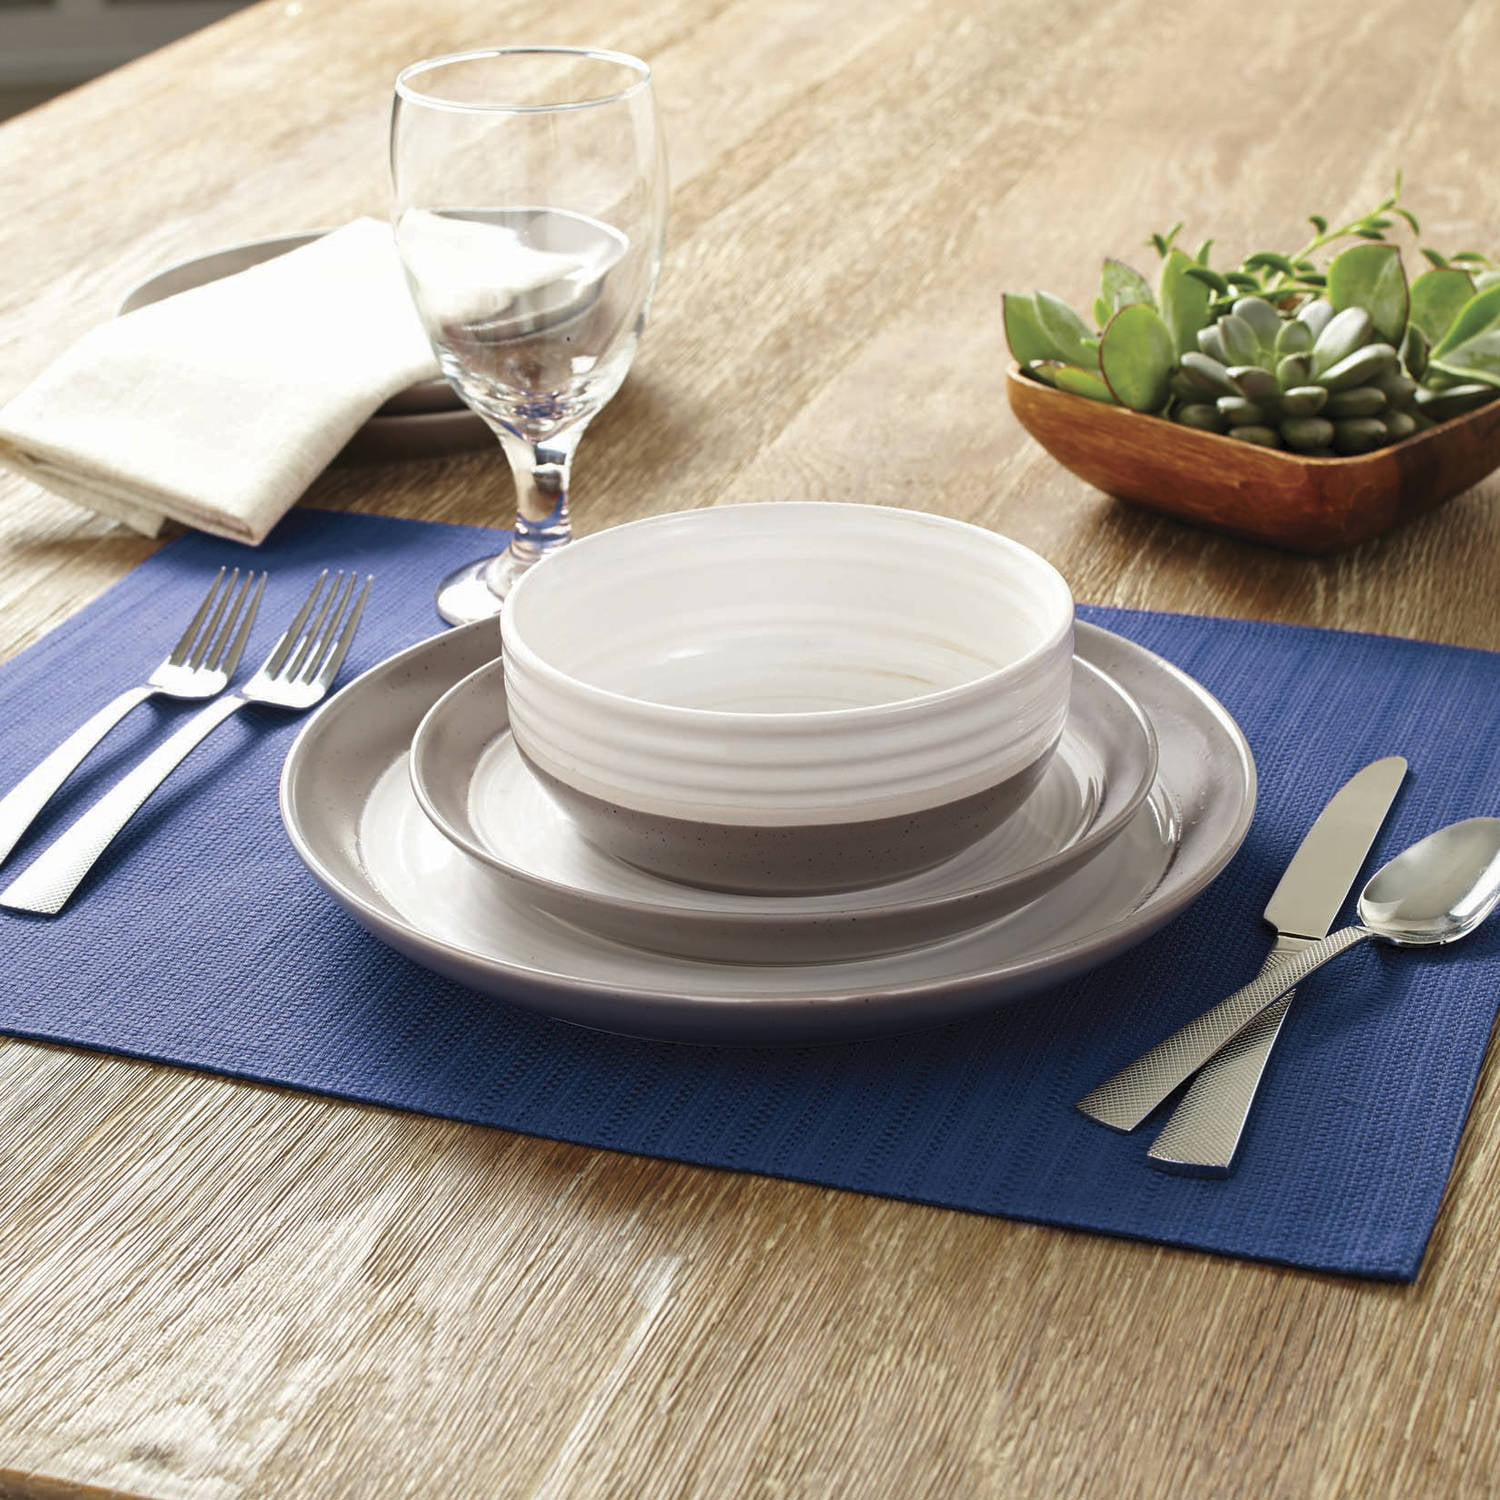 & Better Homes And Garden Ashmoor 12-Piece Dinnerware Set - Walmart.com